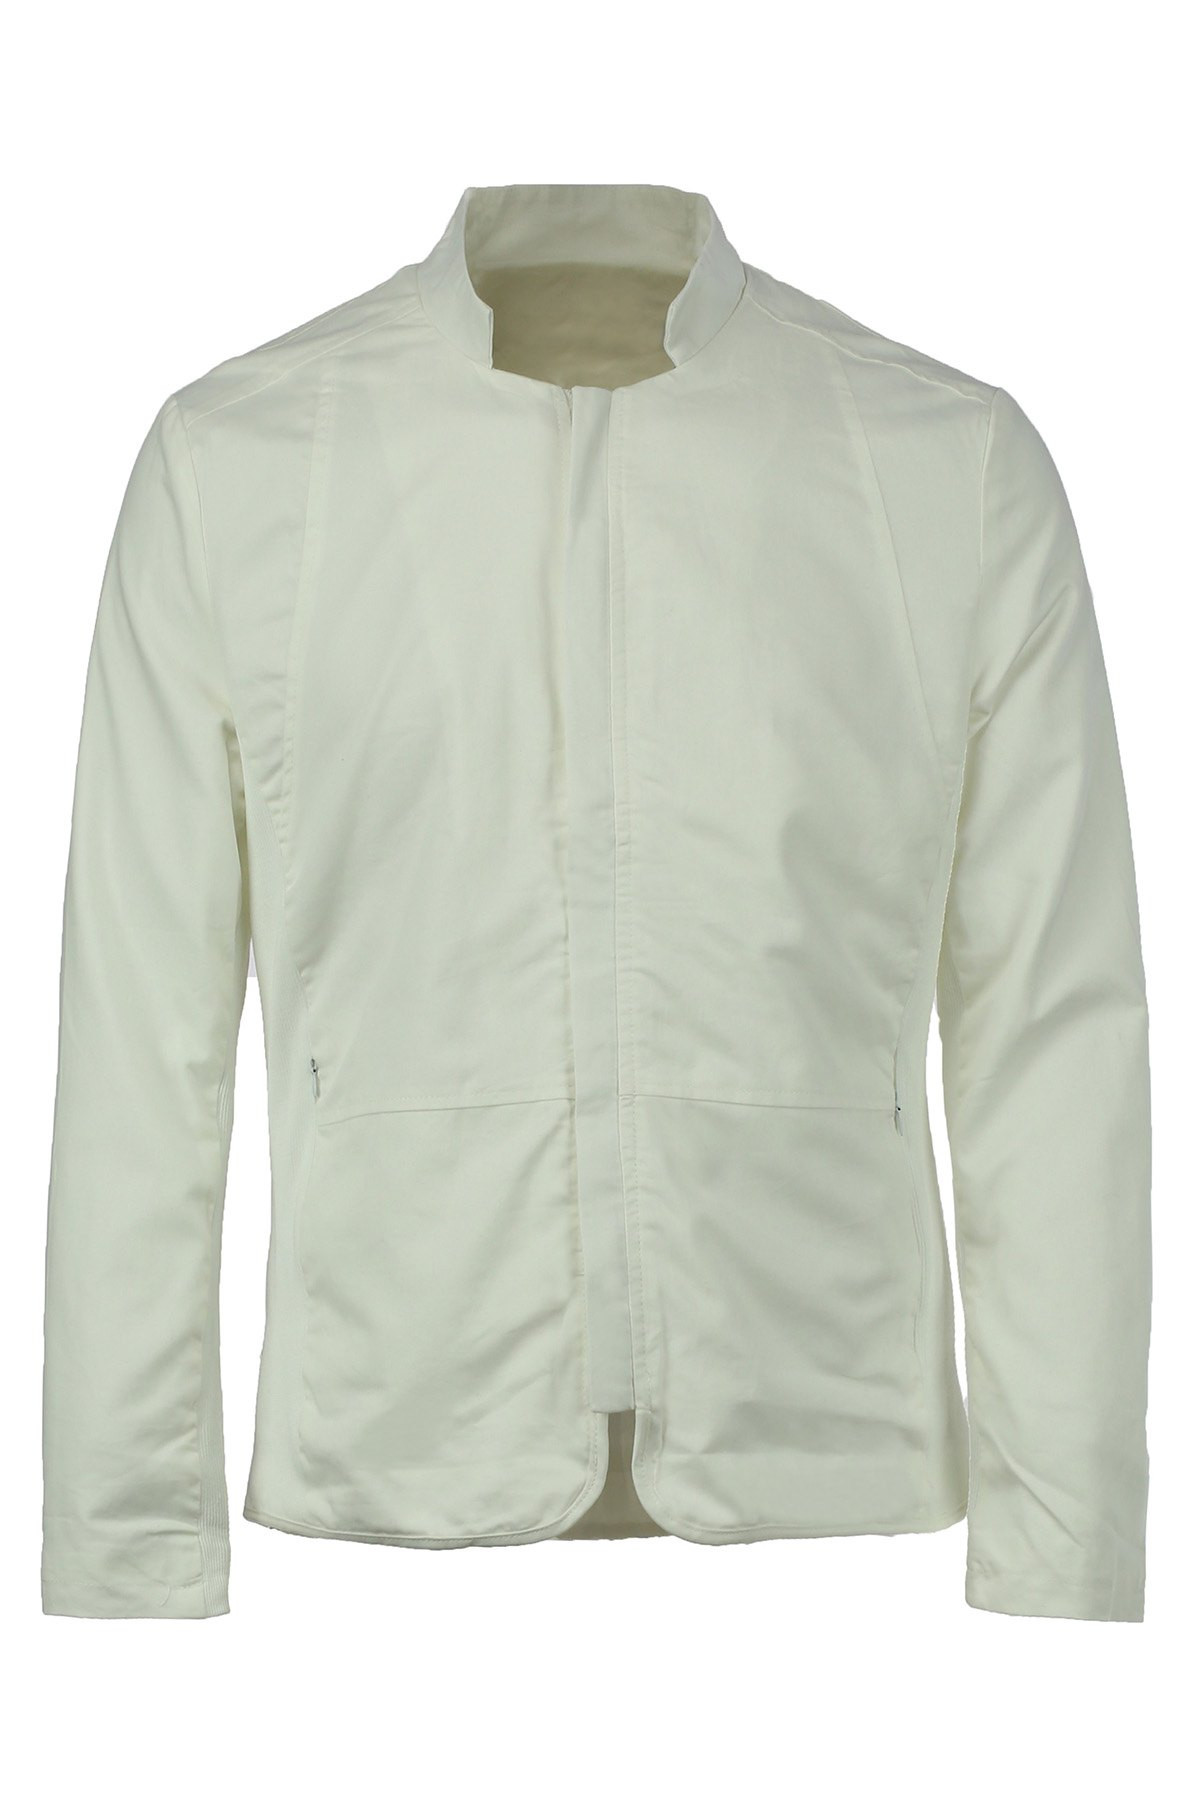 Slimming Stand Collar Zipper Pocket French Front Fabric Spliced Long Sleeves Men's Casual Jacket - WHITE XL